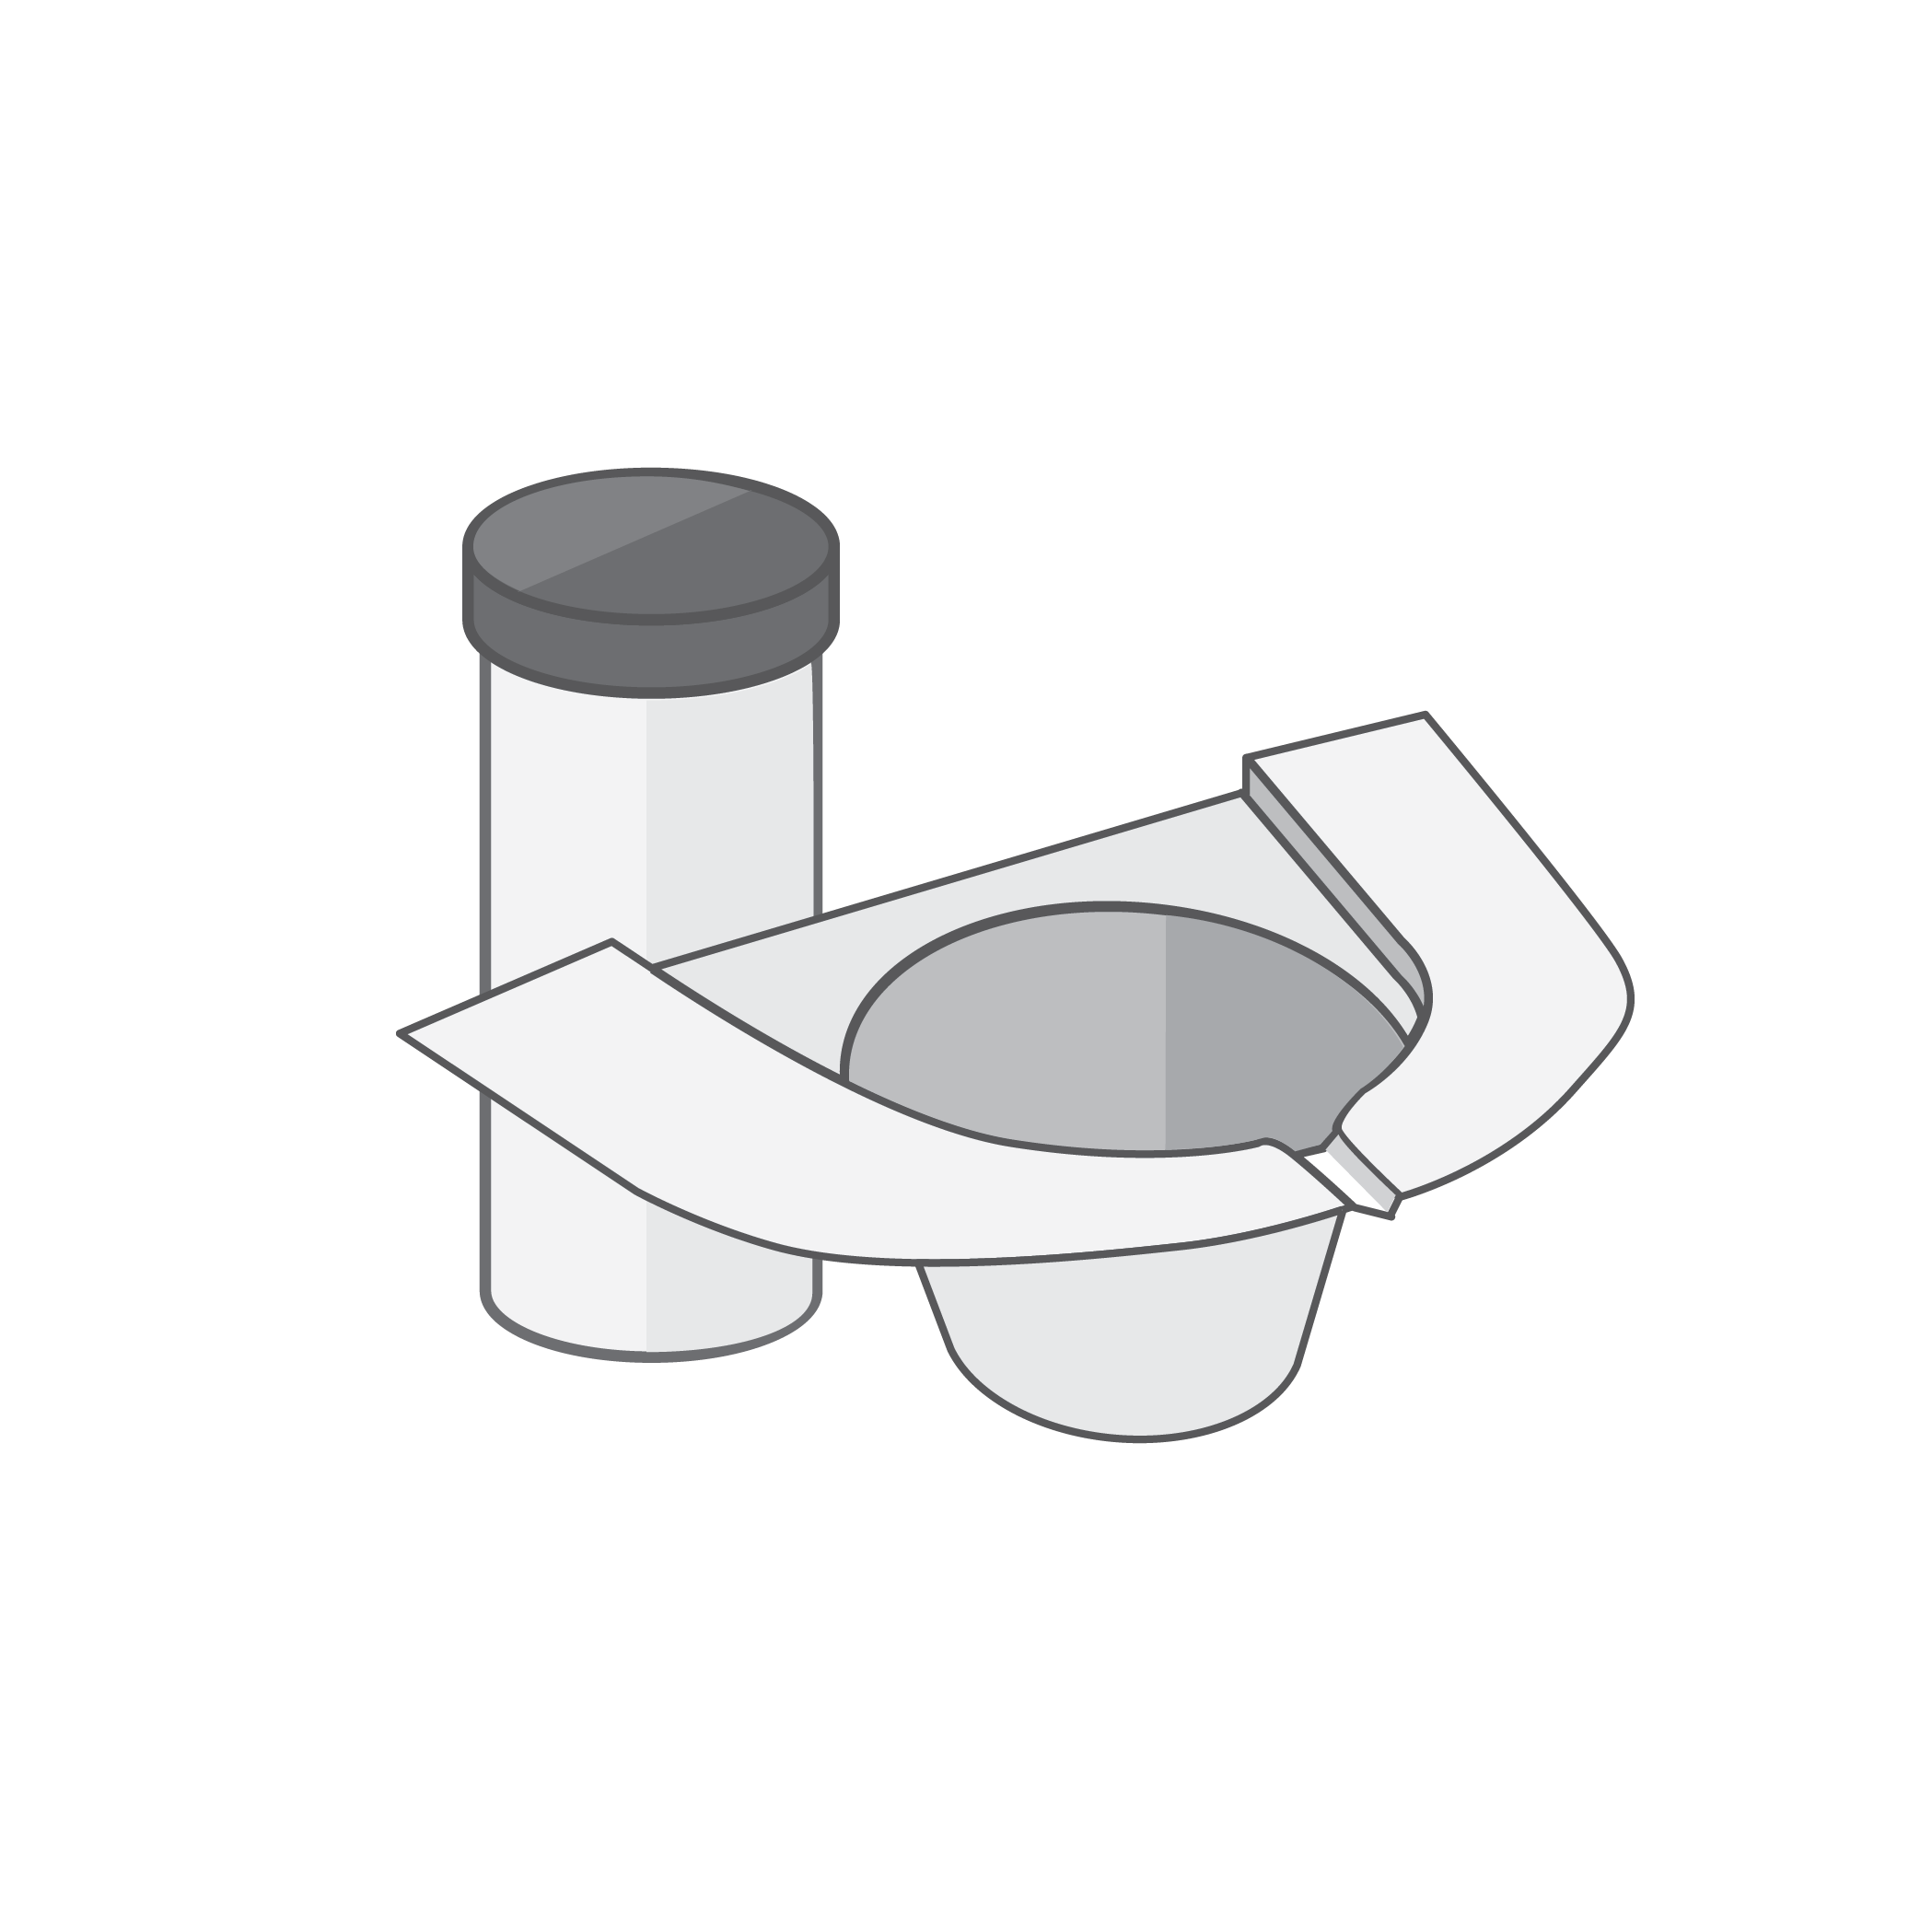 urinalysis icon3.png